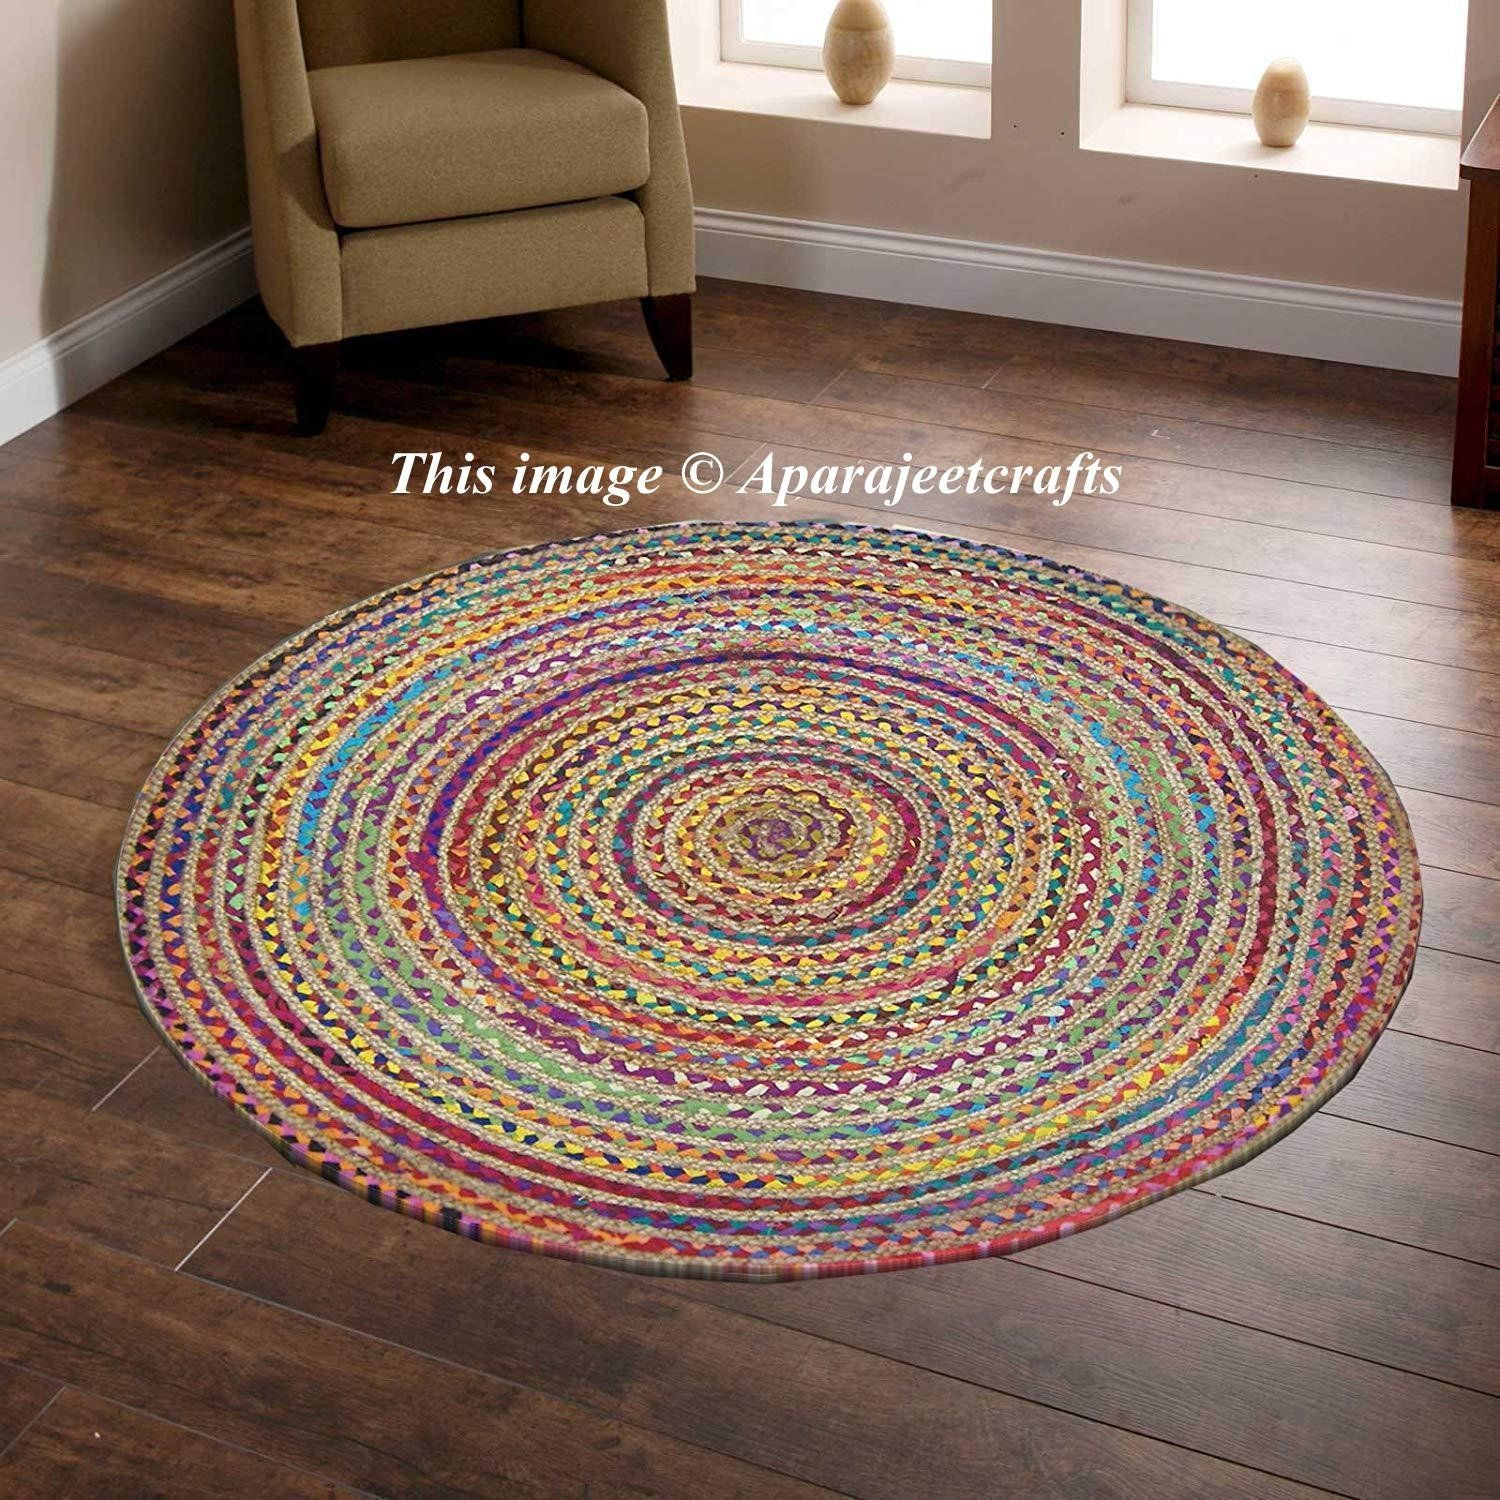 Indian Handmade Hand Braided Bohemian Cotton And Jute Area Rug Round Rug Multi Colors Home Decor Round Rugs Size 5x5 Feet Round Mat Rug Rags Round Rugs Mandala Rug Circle Rug